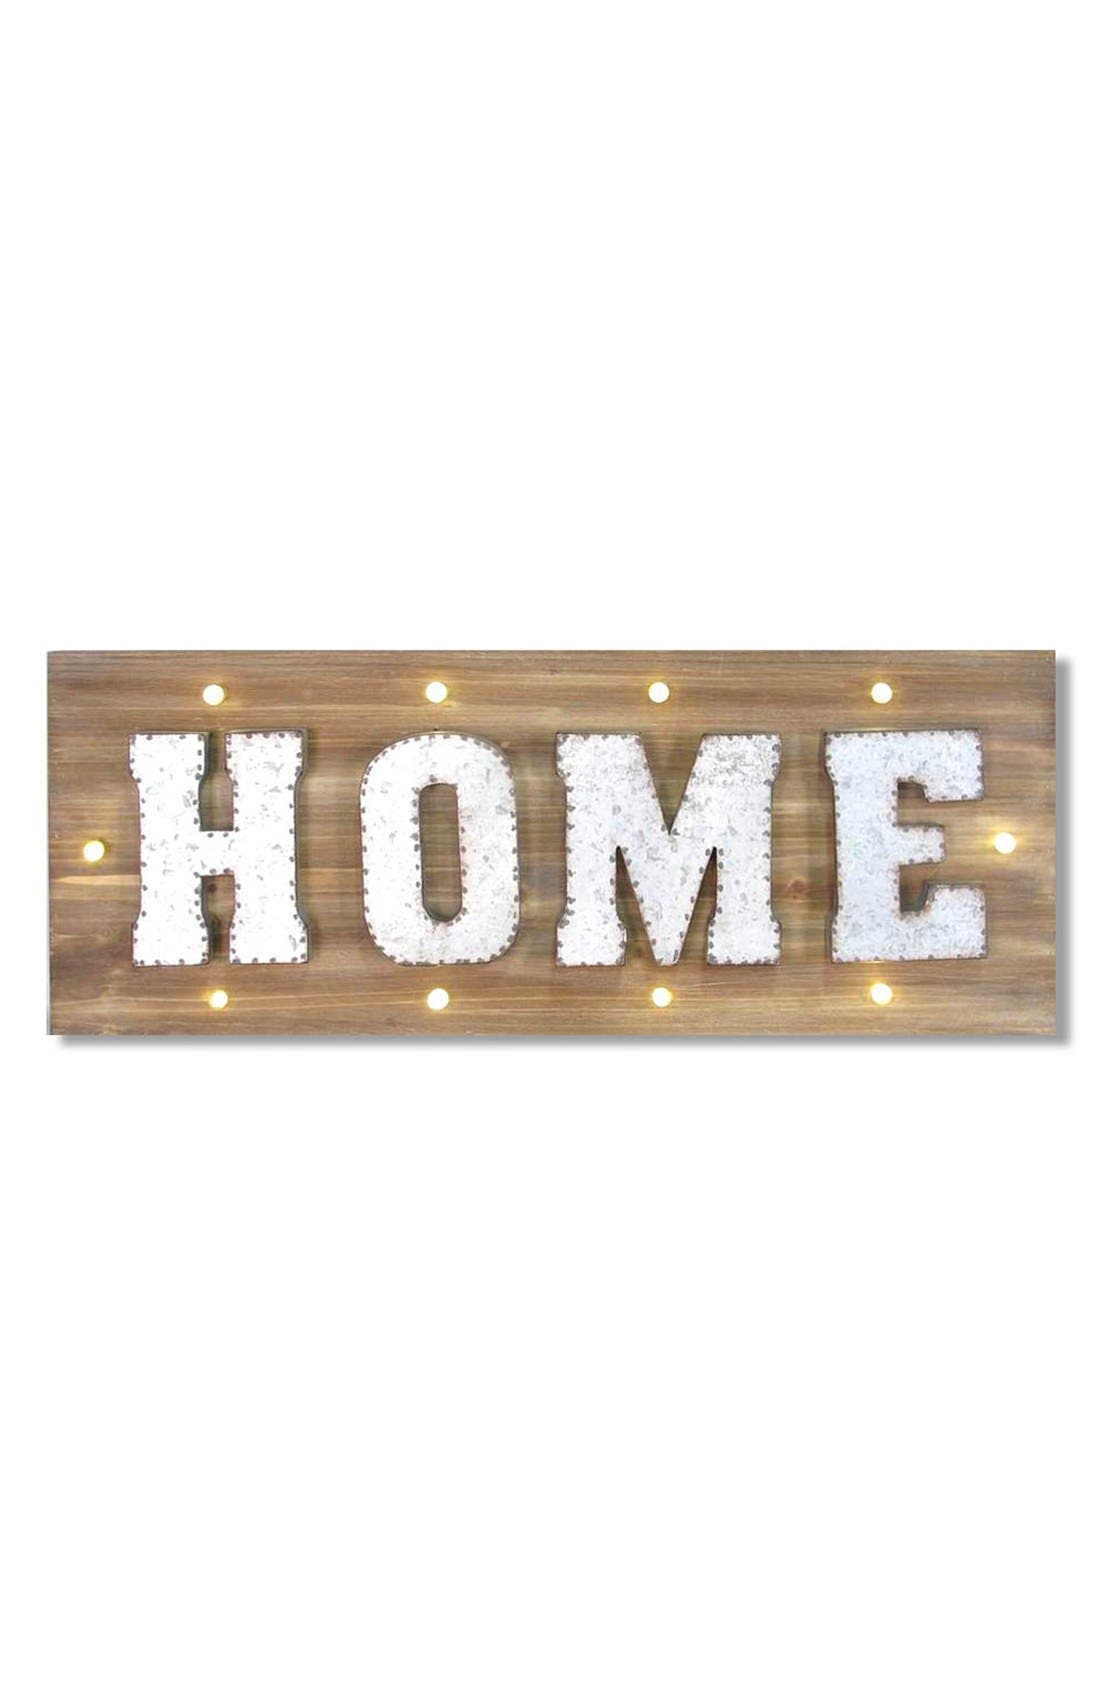 Alternate Image 1 Selected - Crystal Art Gallery 'Home' Marquee Light Wooden Sign